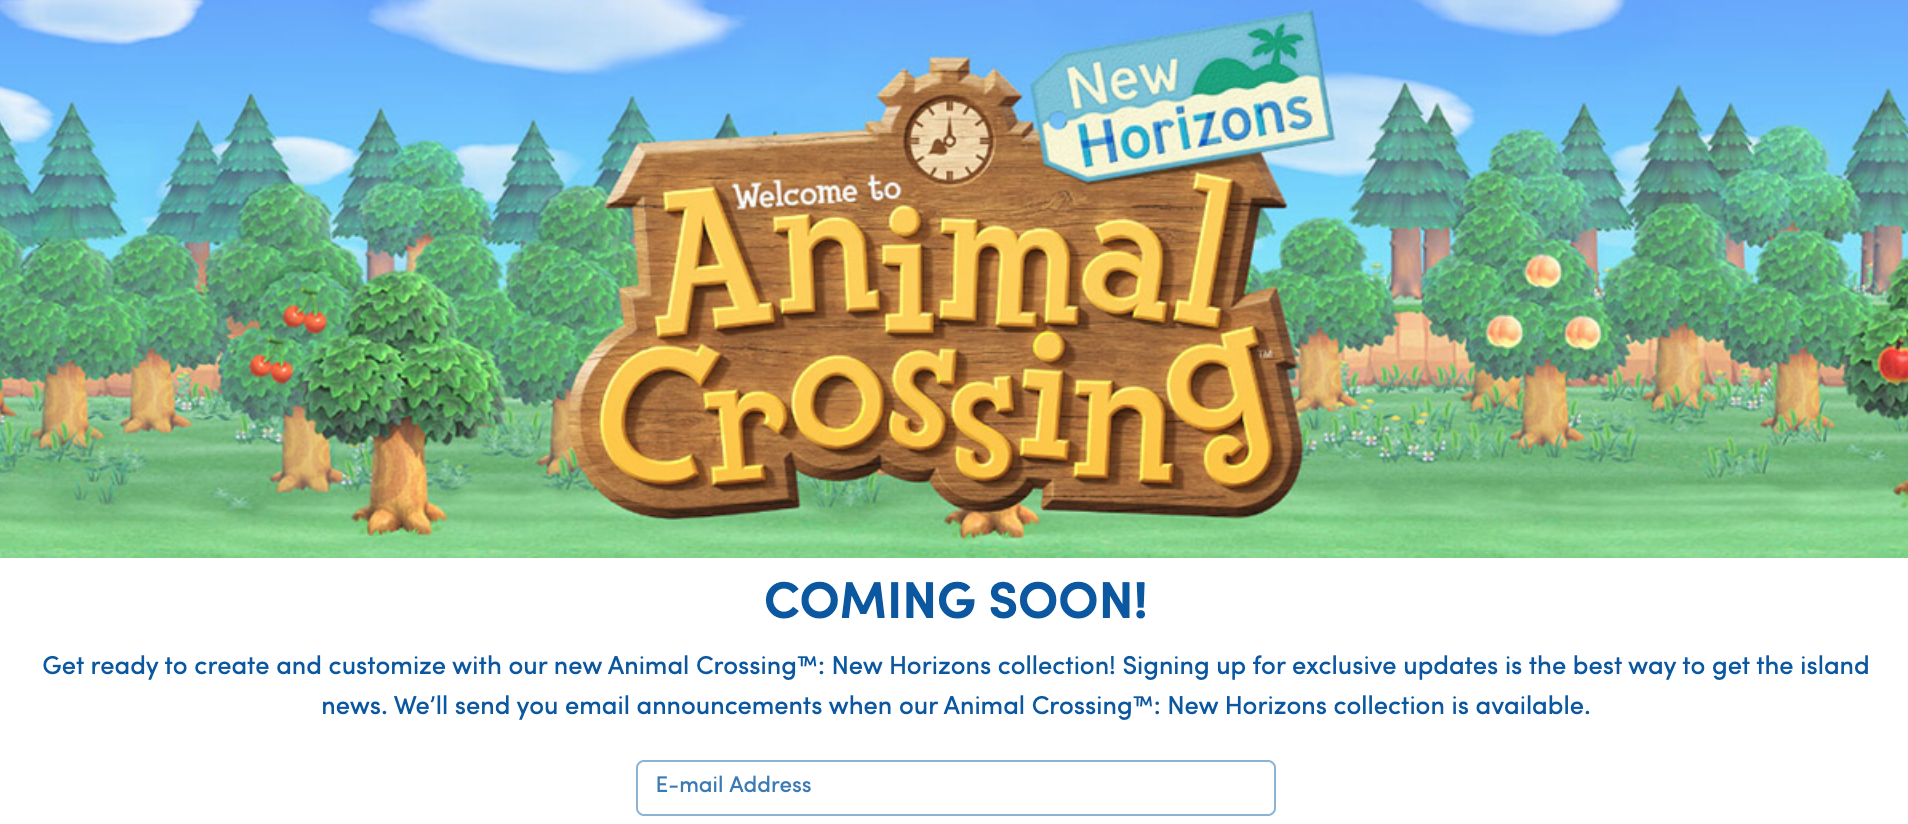 Here's how the official Animal Crossing Build-A-Bear page looks at the time of writing.